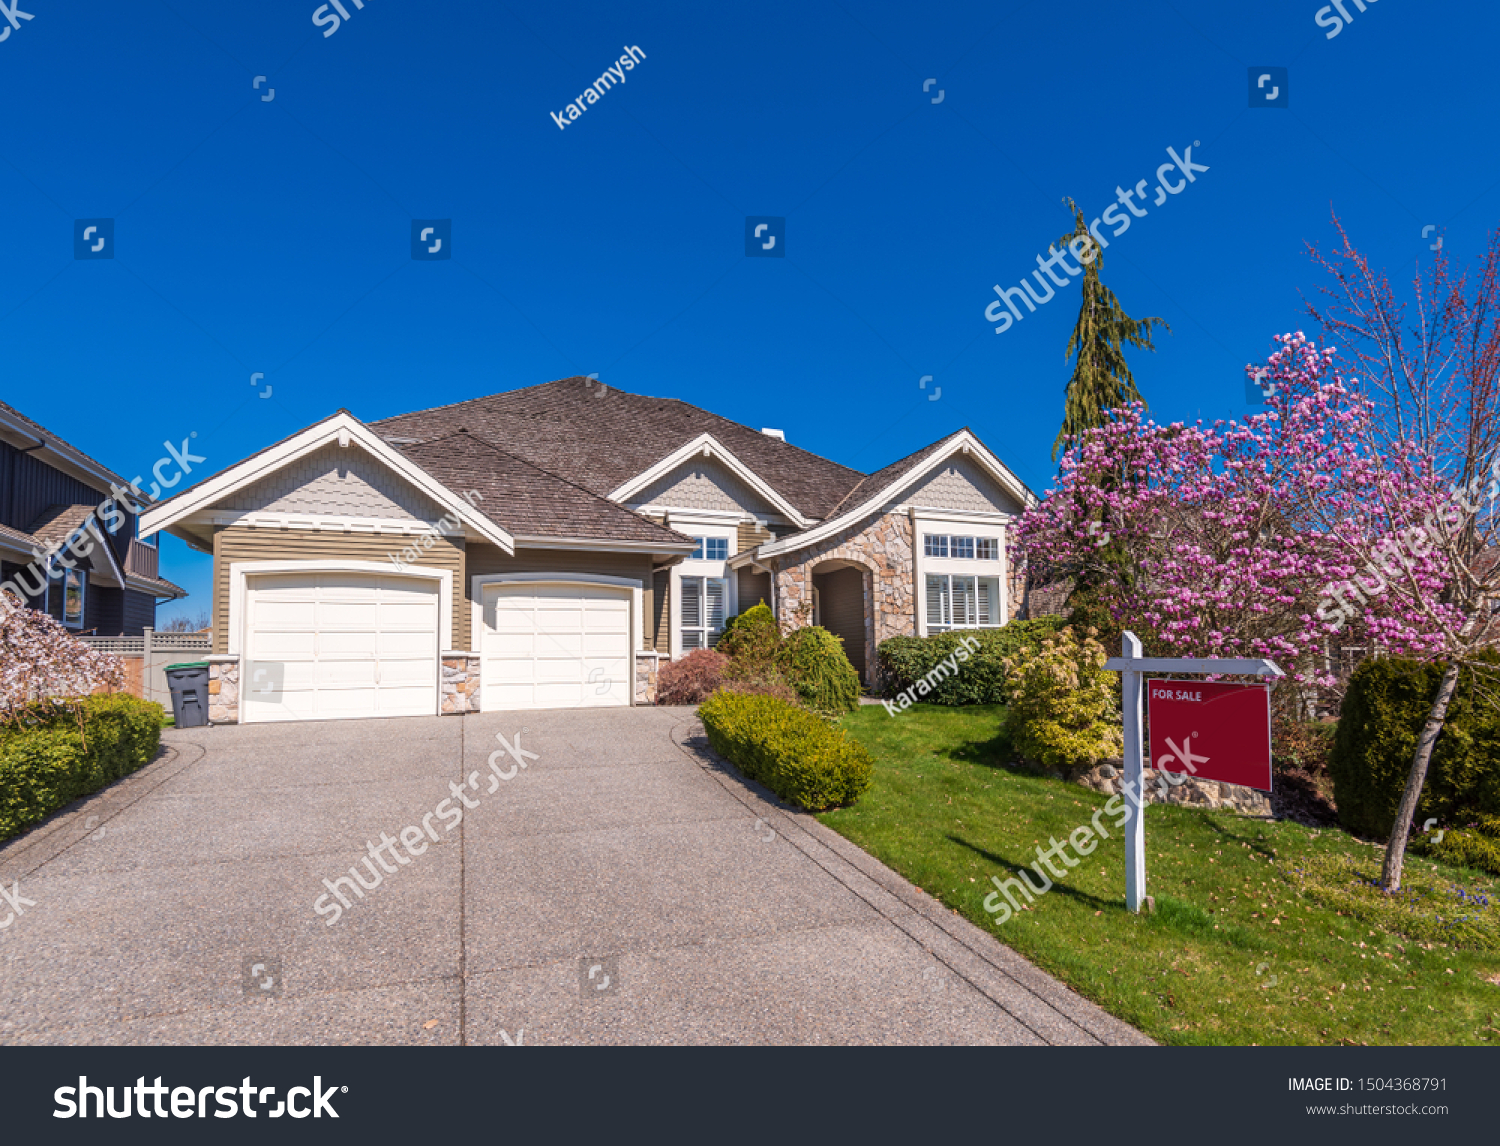 House for sale in Vancouver, Canada. Real estate sign in front of a house. #1504368791